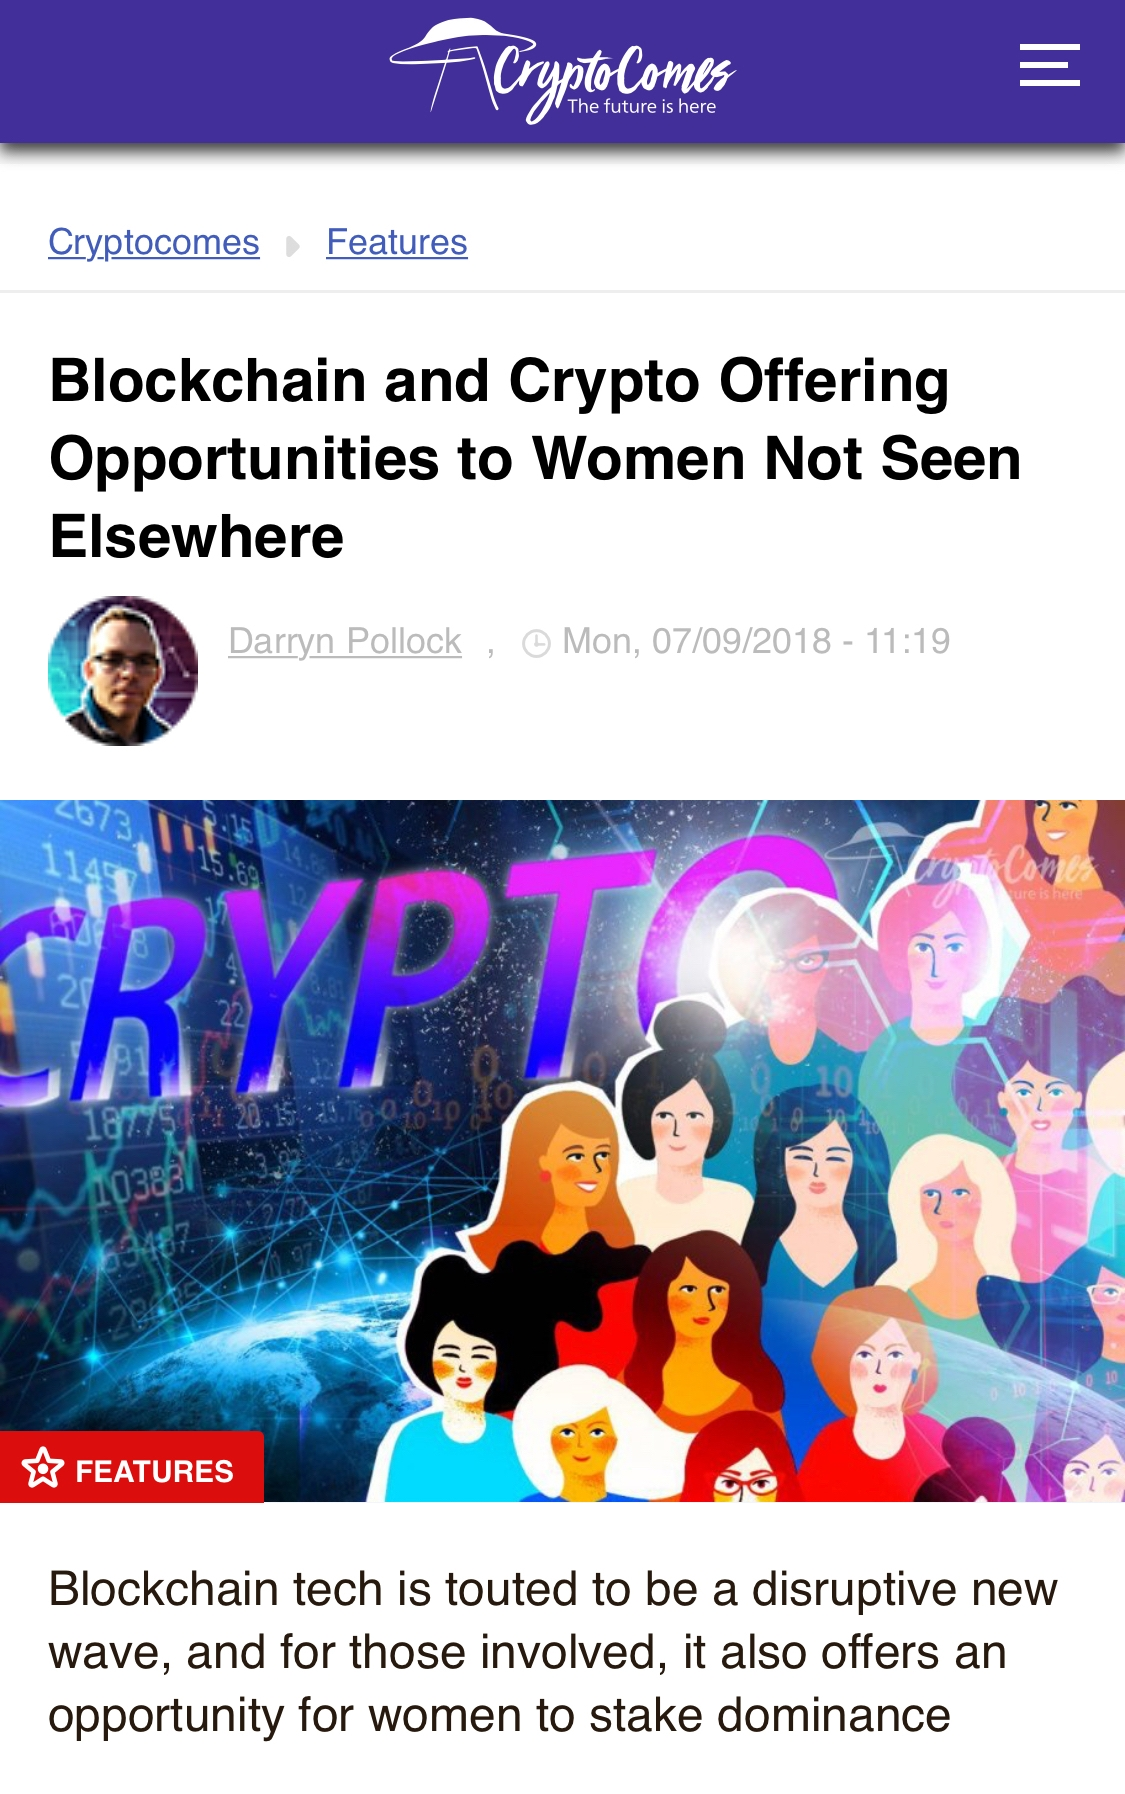 Blockchain and Crypto Opportunities.jpg